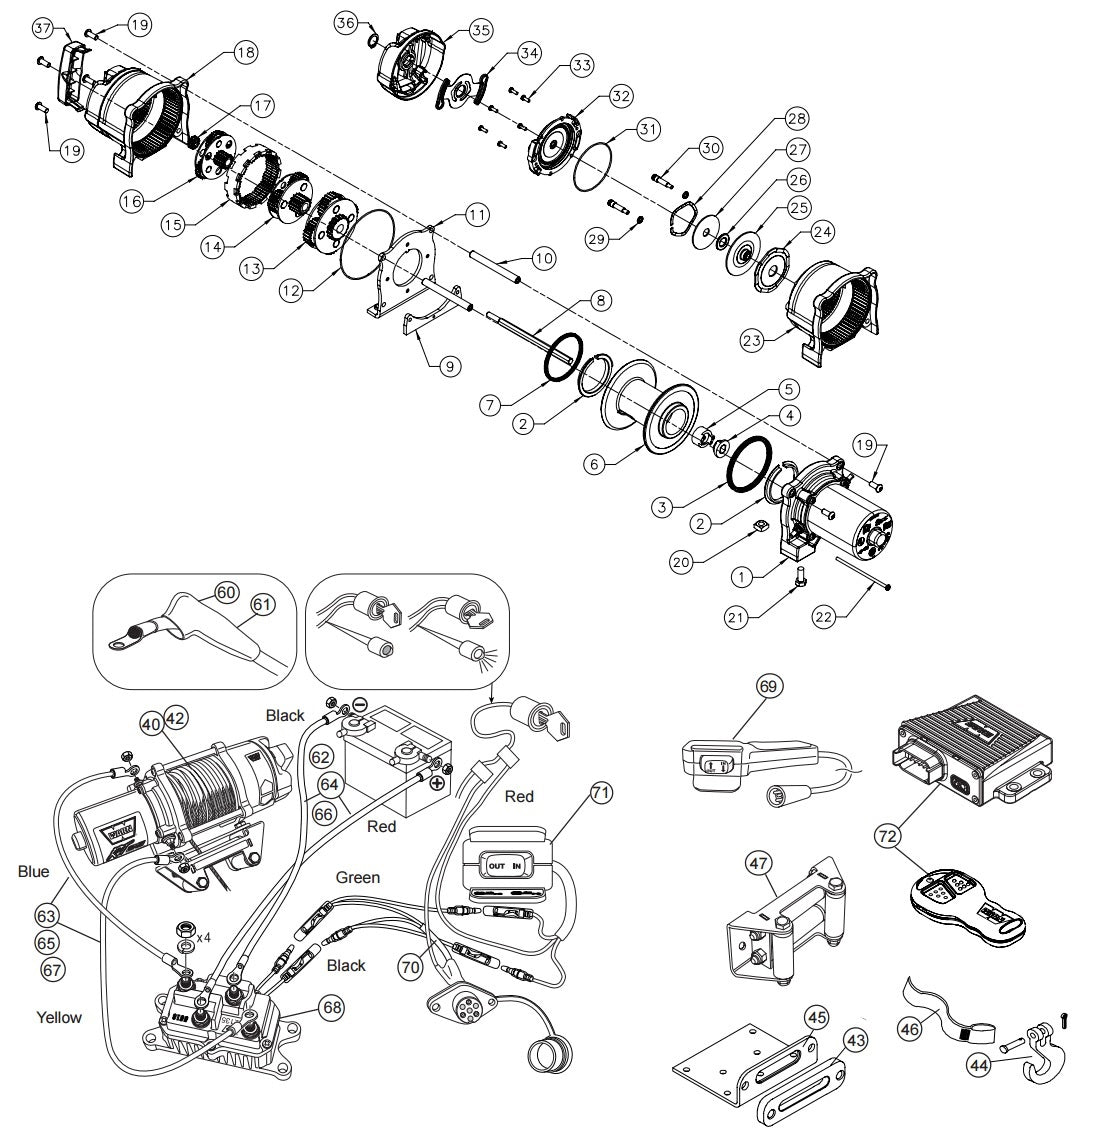 5ci Warn Winch Wiring Diagram 2 Warn Winch 2500 Wiring